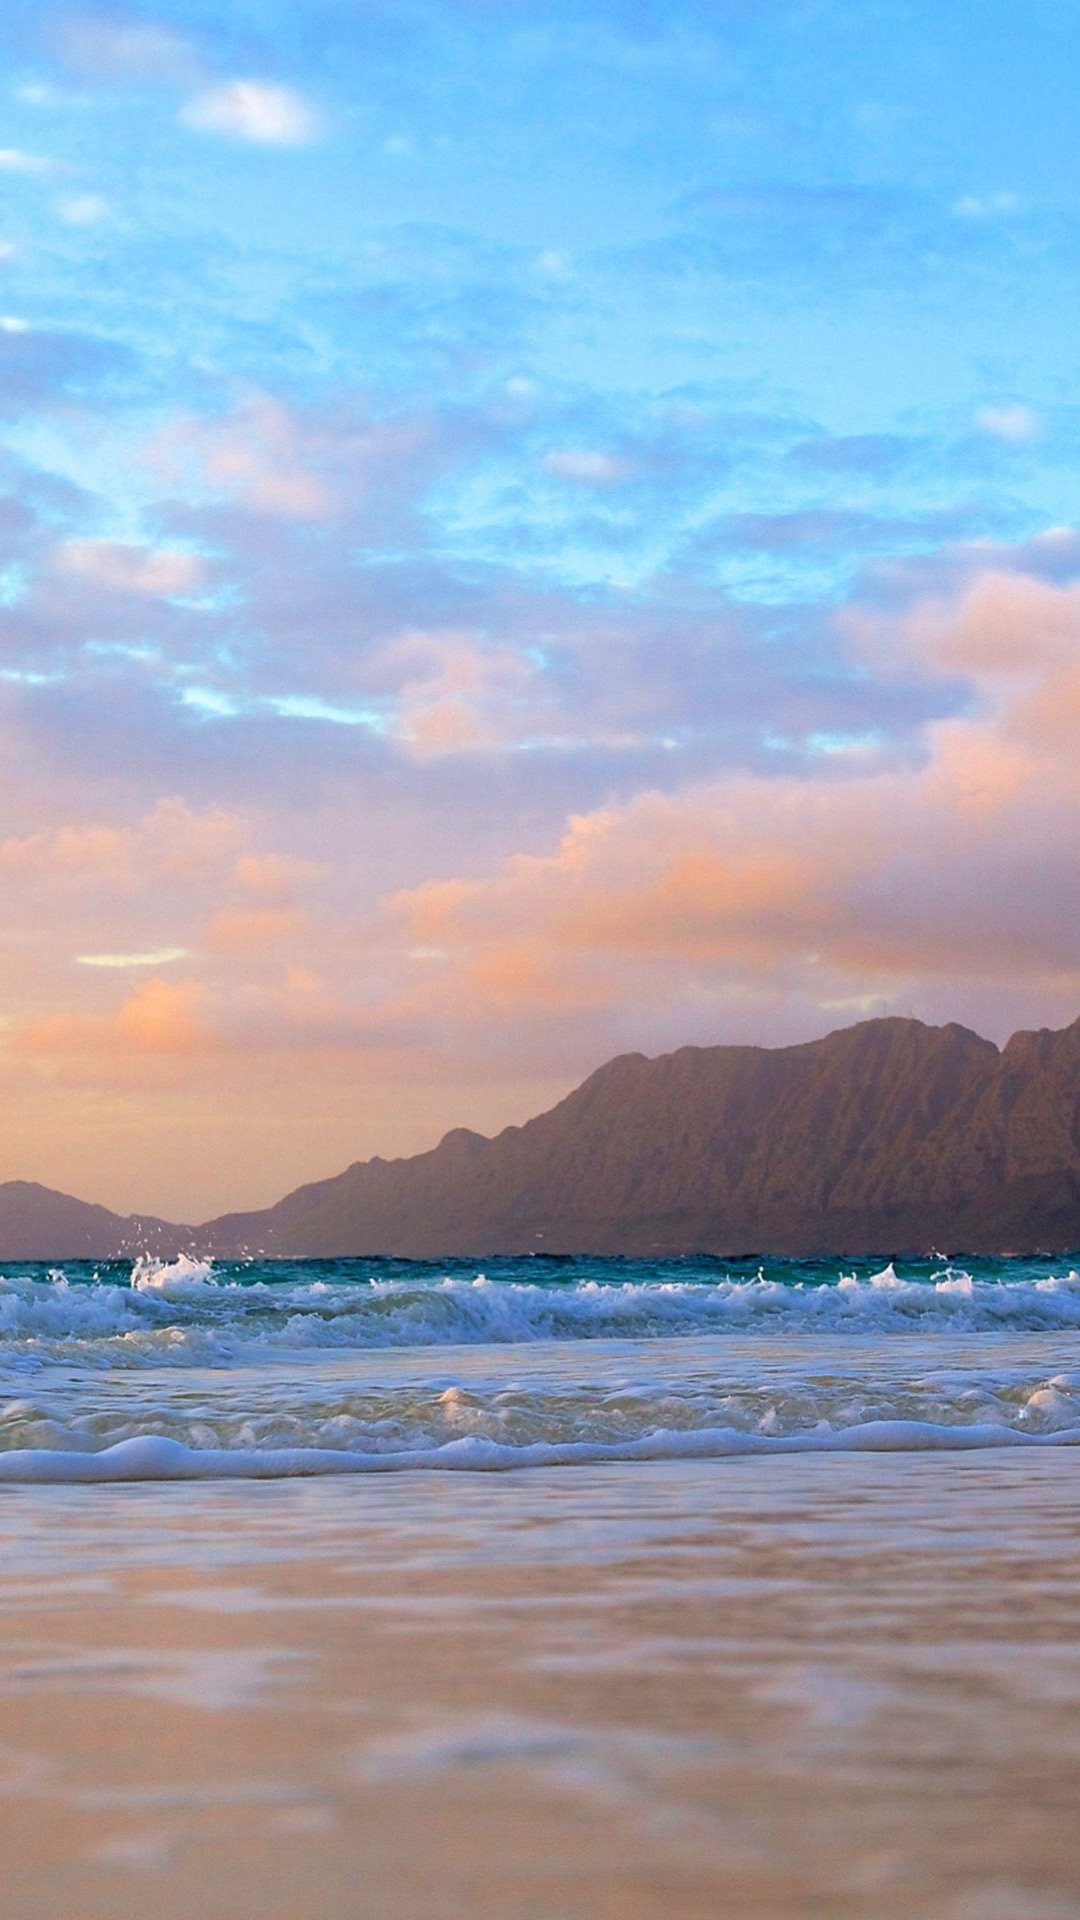 Mountains Background Beach Waves iPhone 6 Plus HD Wallpaper …